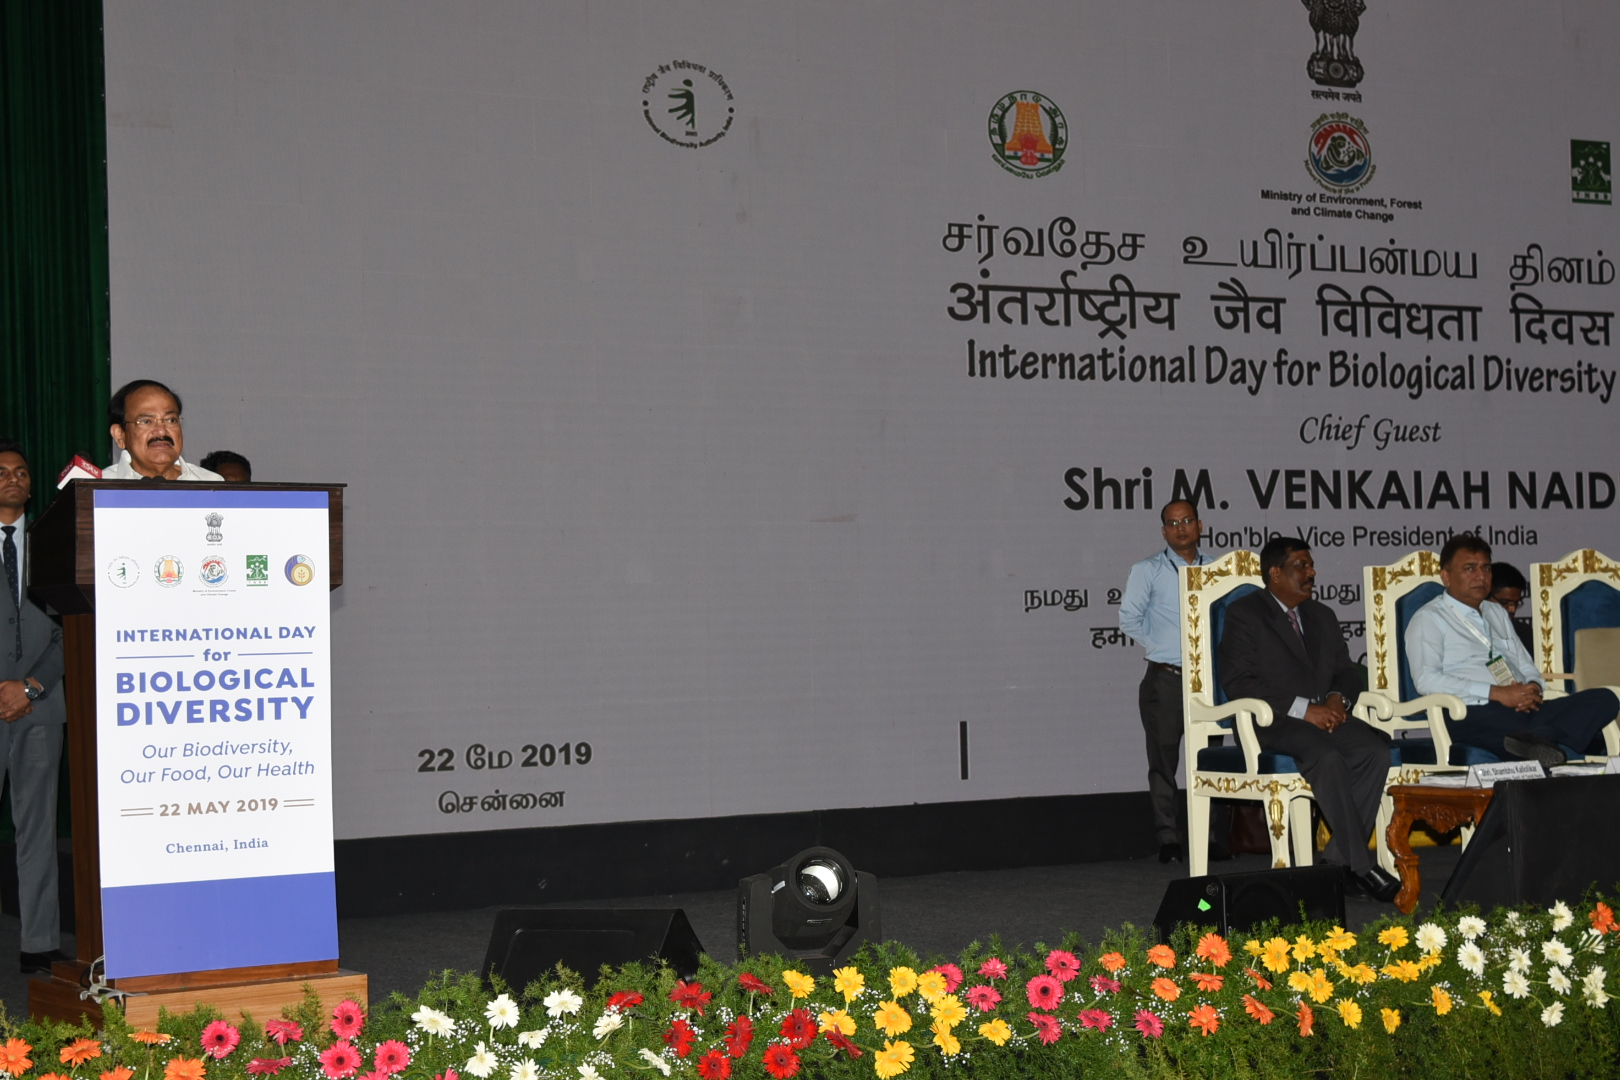 The Vice President, Shri M. Venkaiah Naidu addressing the gathering at the International Day for Biological Diversity 2019, in Chennai on May 22, 2019.